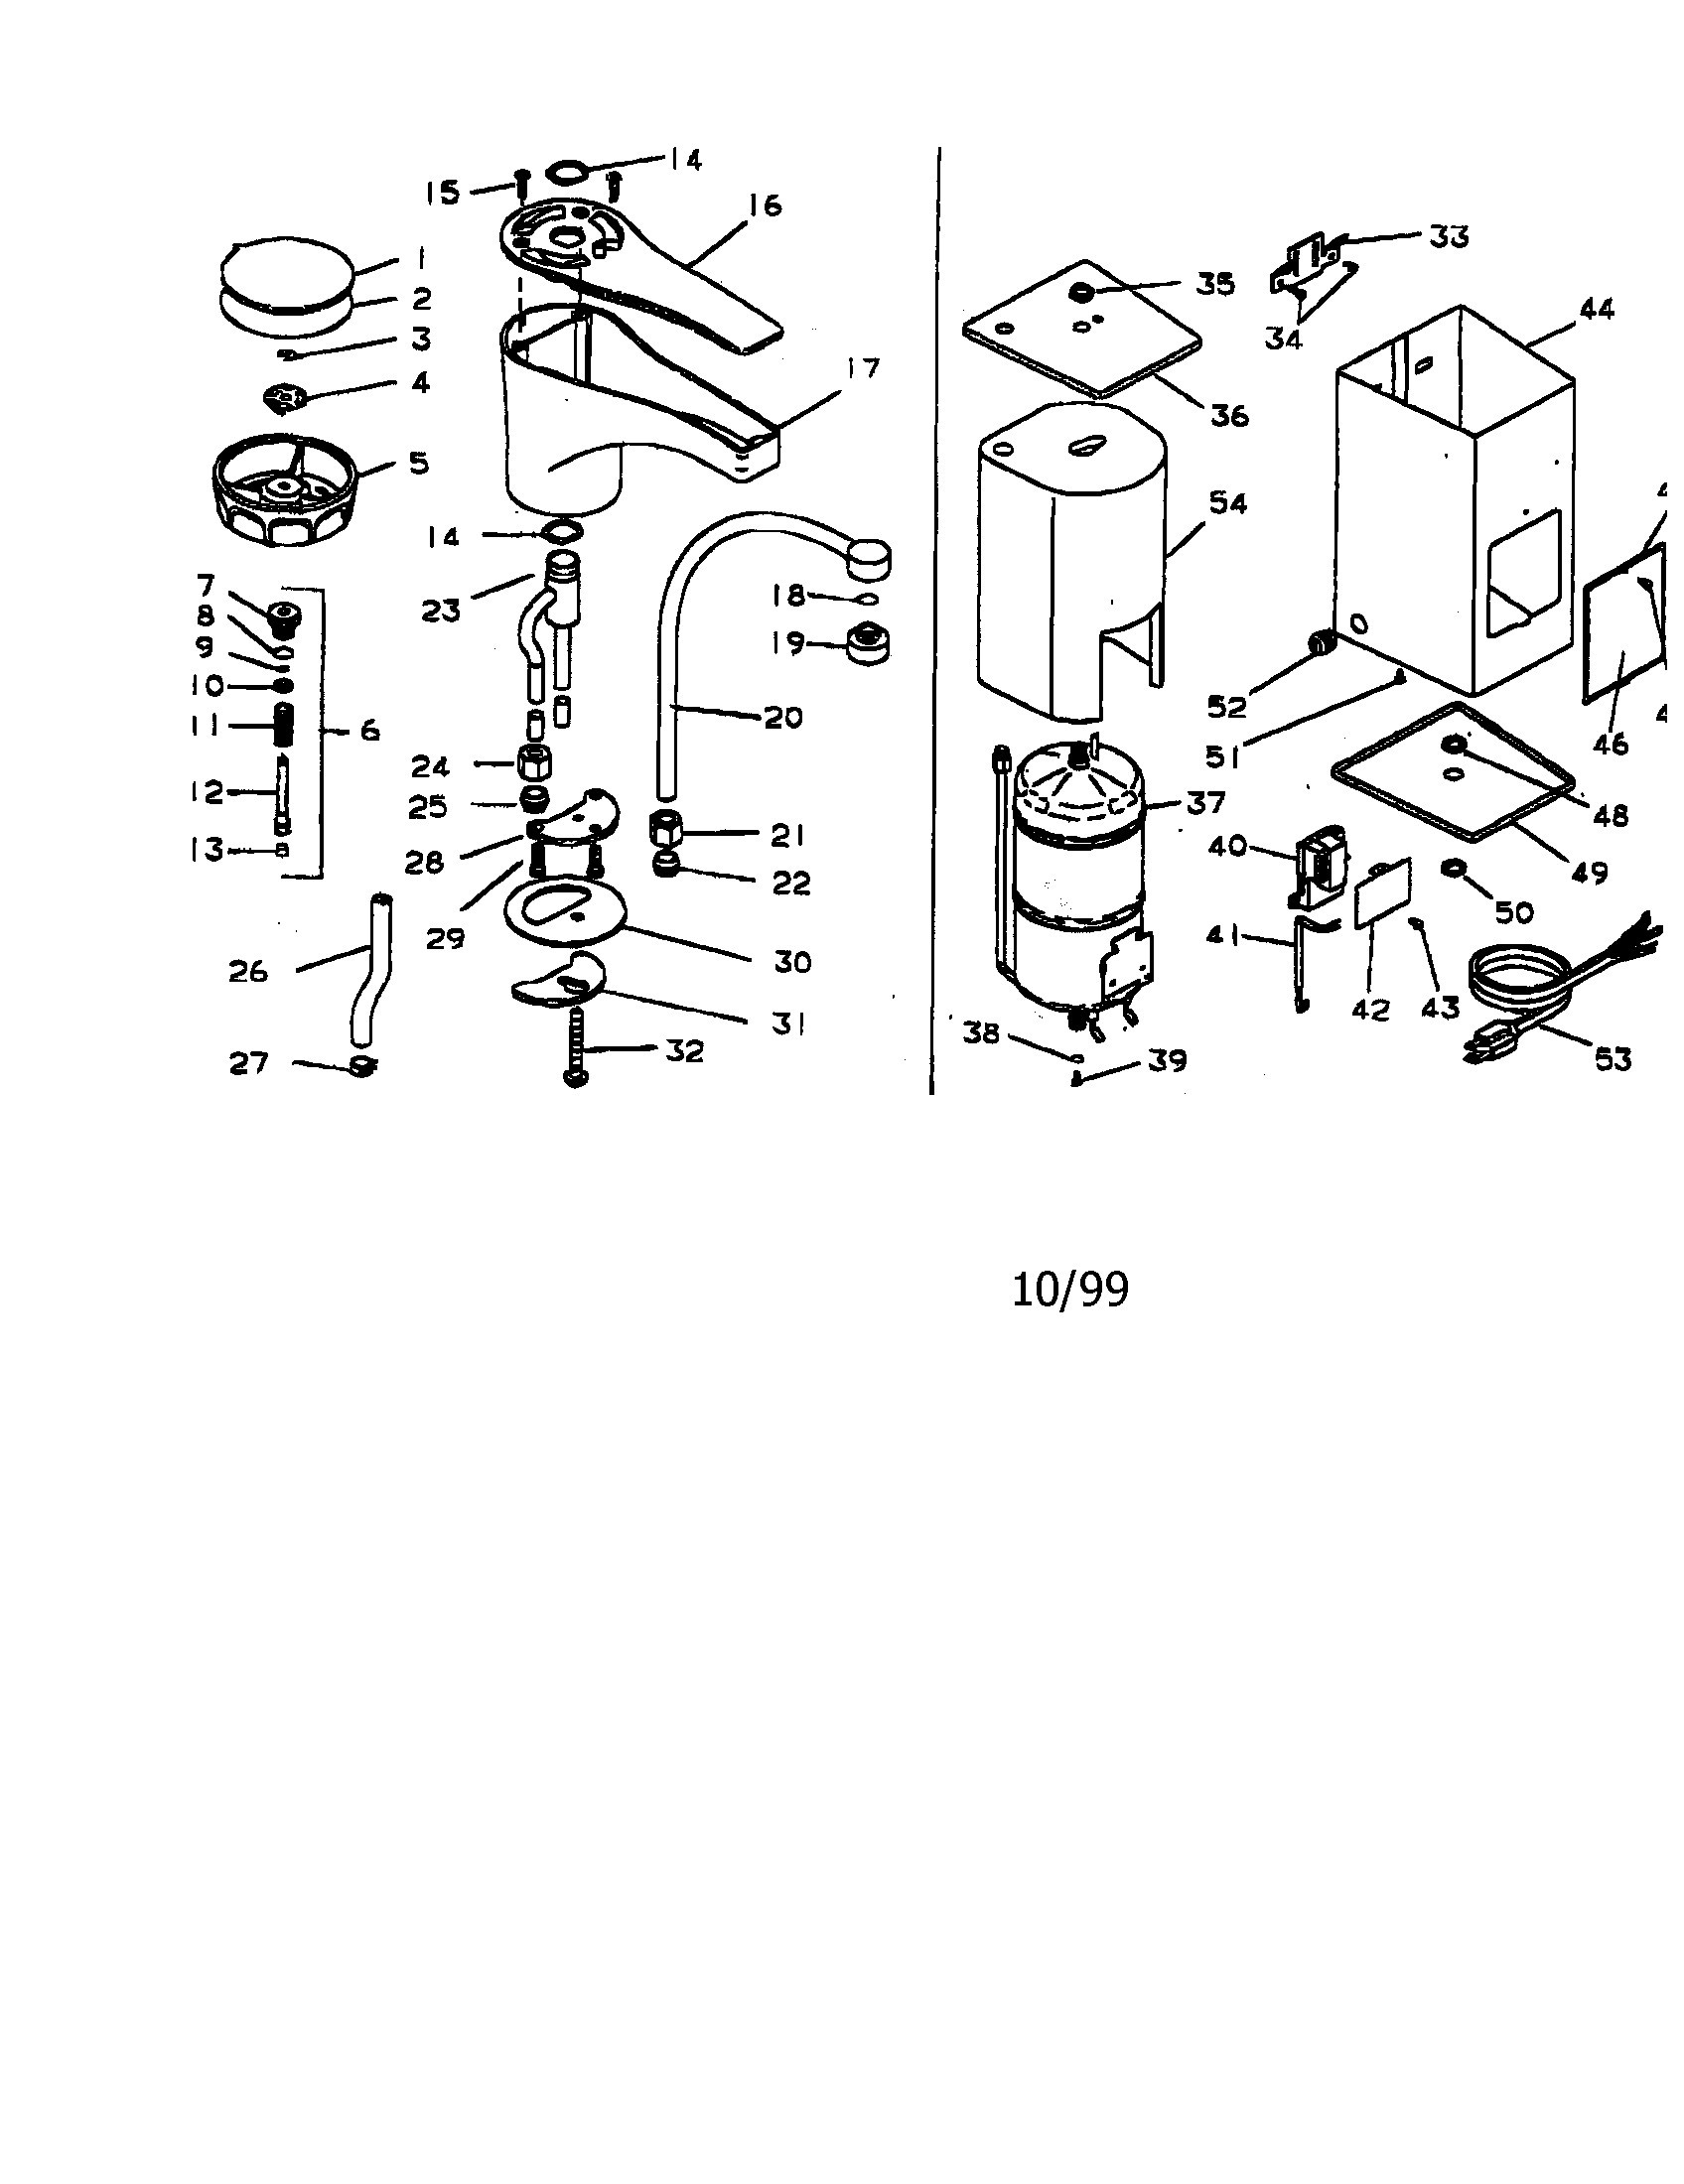 5915a59 Garbage Disposal Parts Diagram My Wiring Diagram Wiring Library